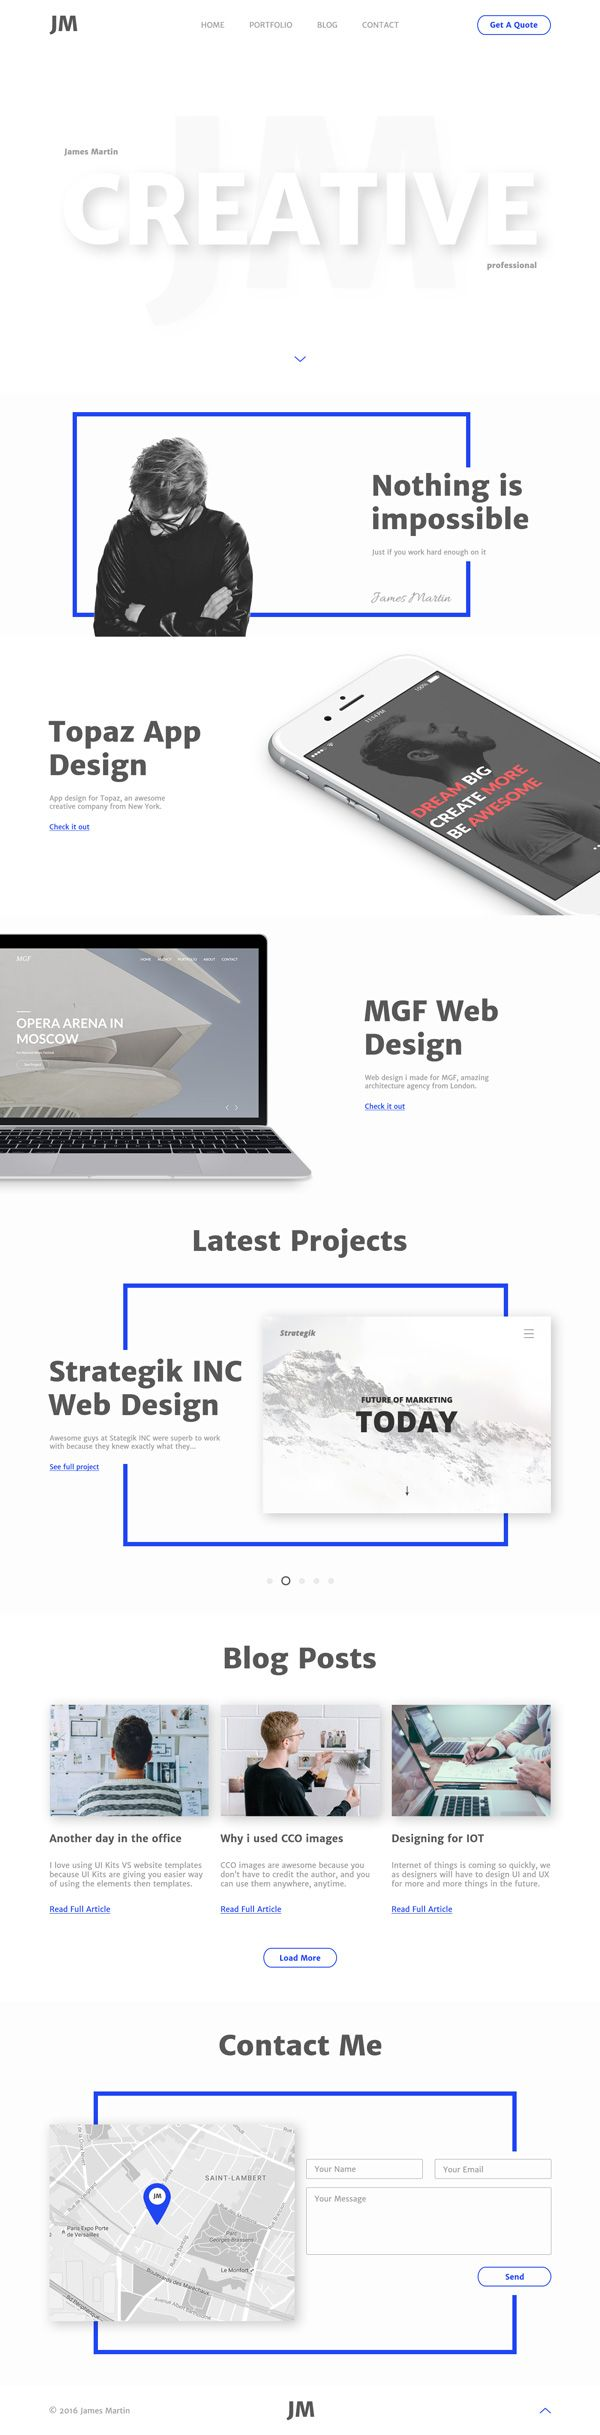 Today We Have For You A Developer Friendly Html Template With An